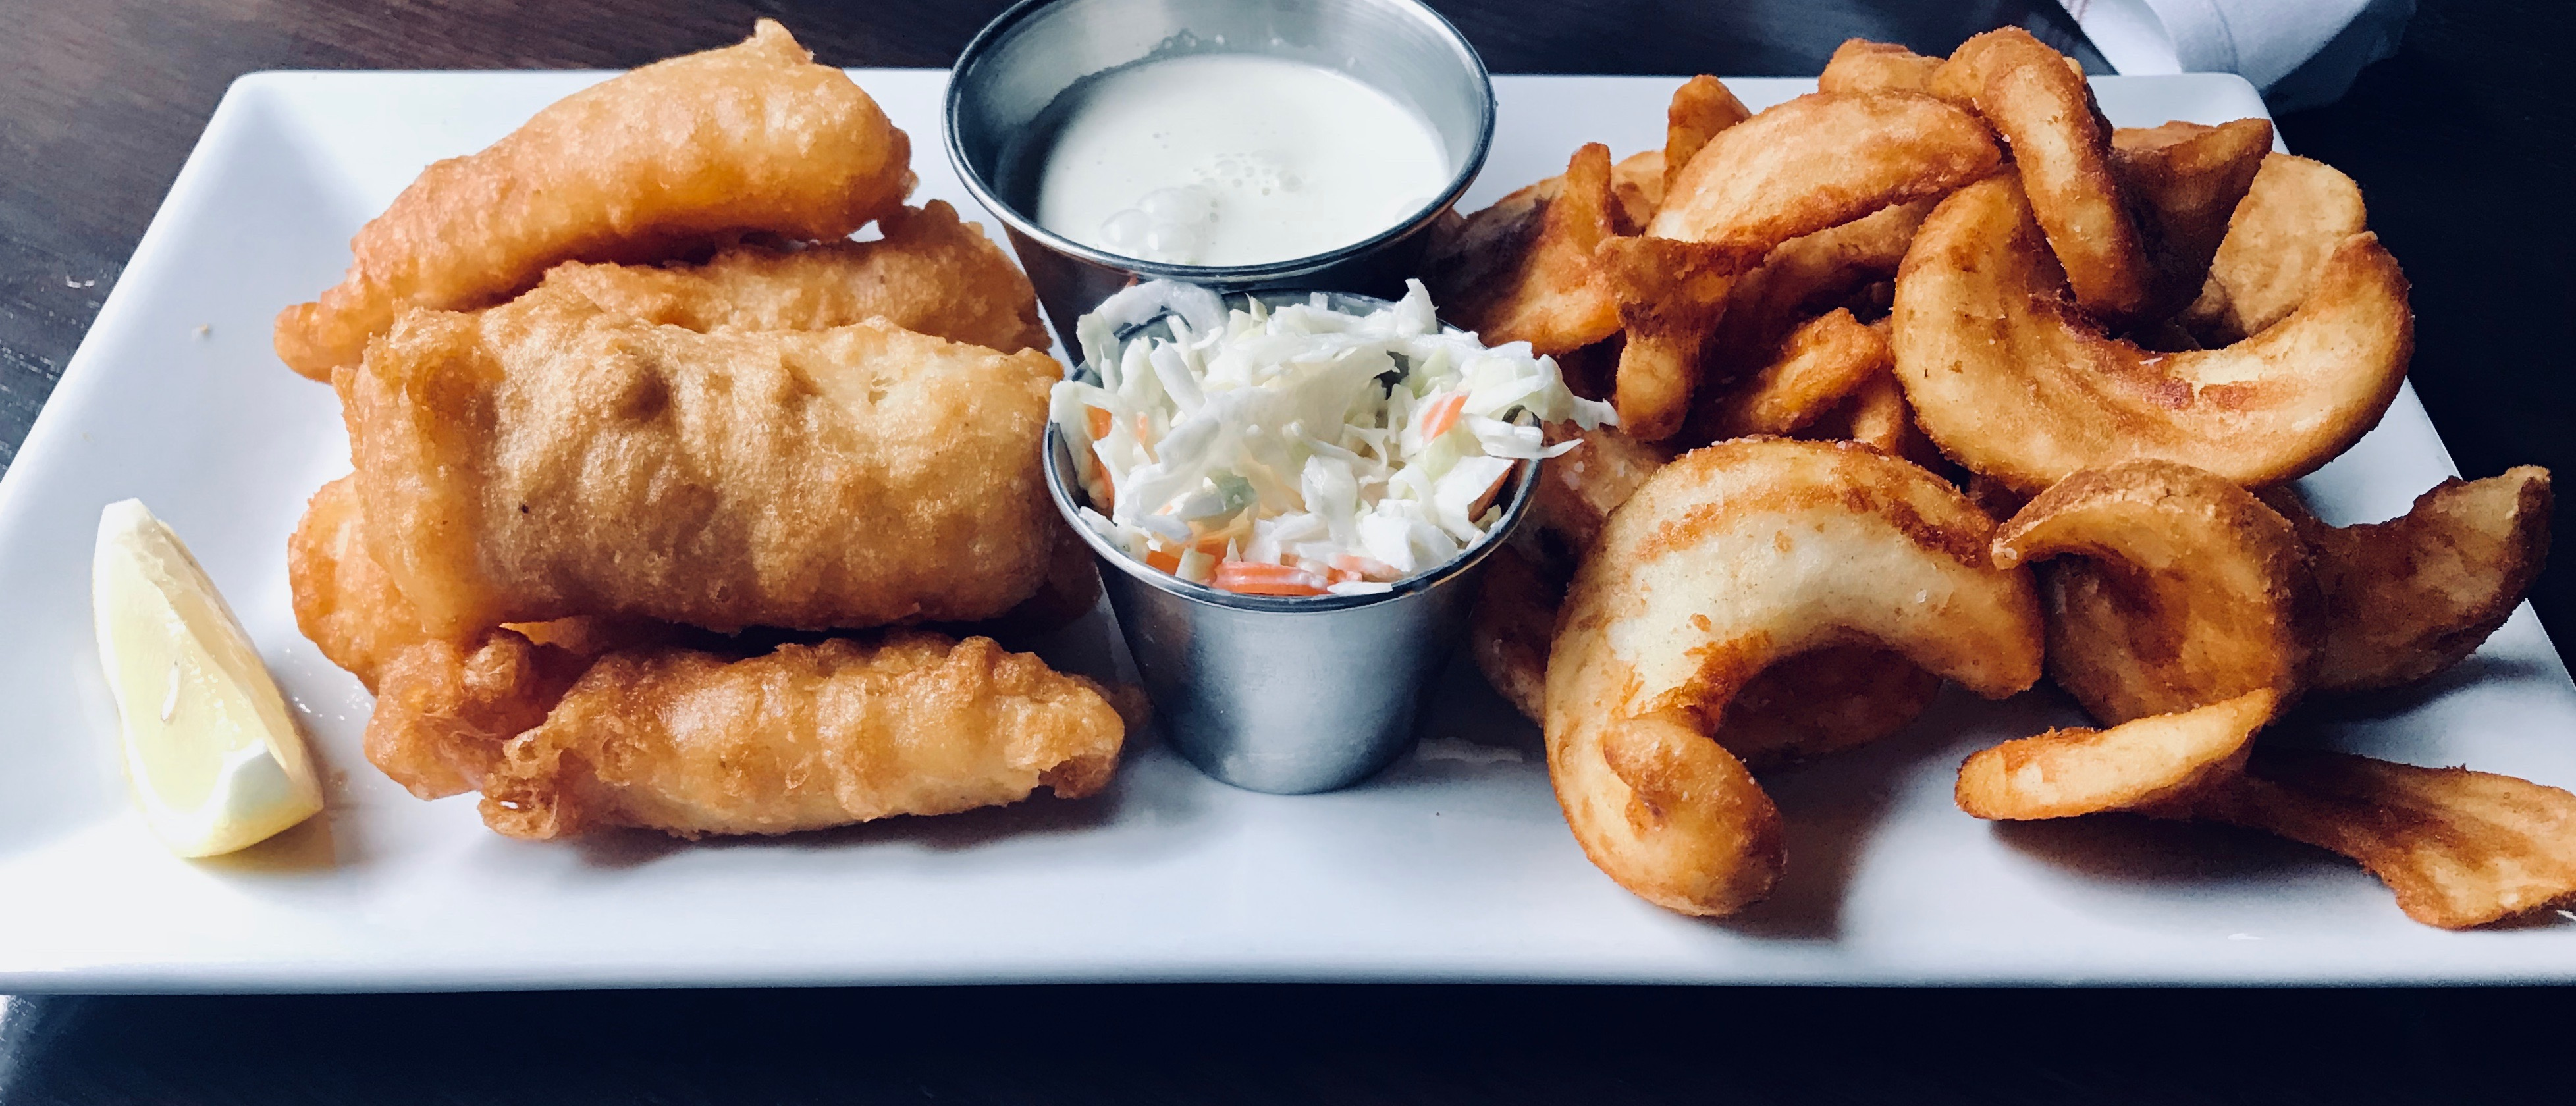 Bar Deco offers a fish and chips special every Friday (all year round!) for $12. You also can't go wrong with crispy fish tacos, served with beer-battered cod, slaw, pico de gallo and tartar sauce ($17). (Image: Courtesy Bar Deco)<p></p>